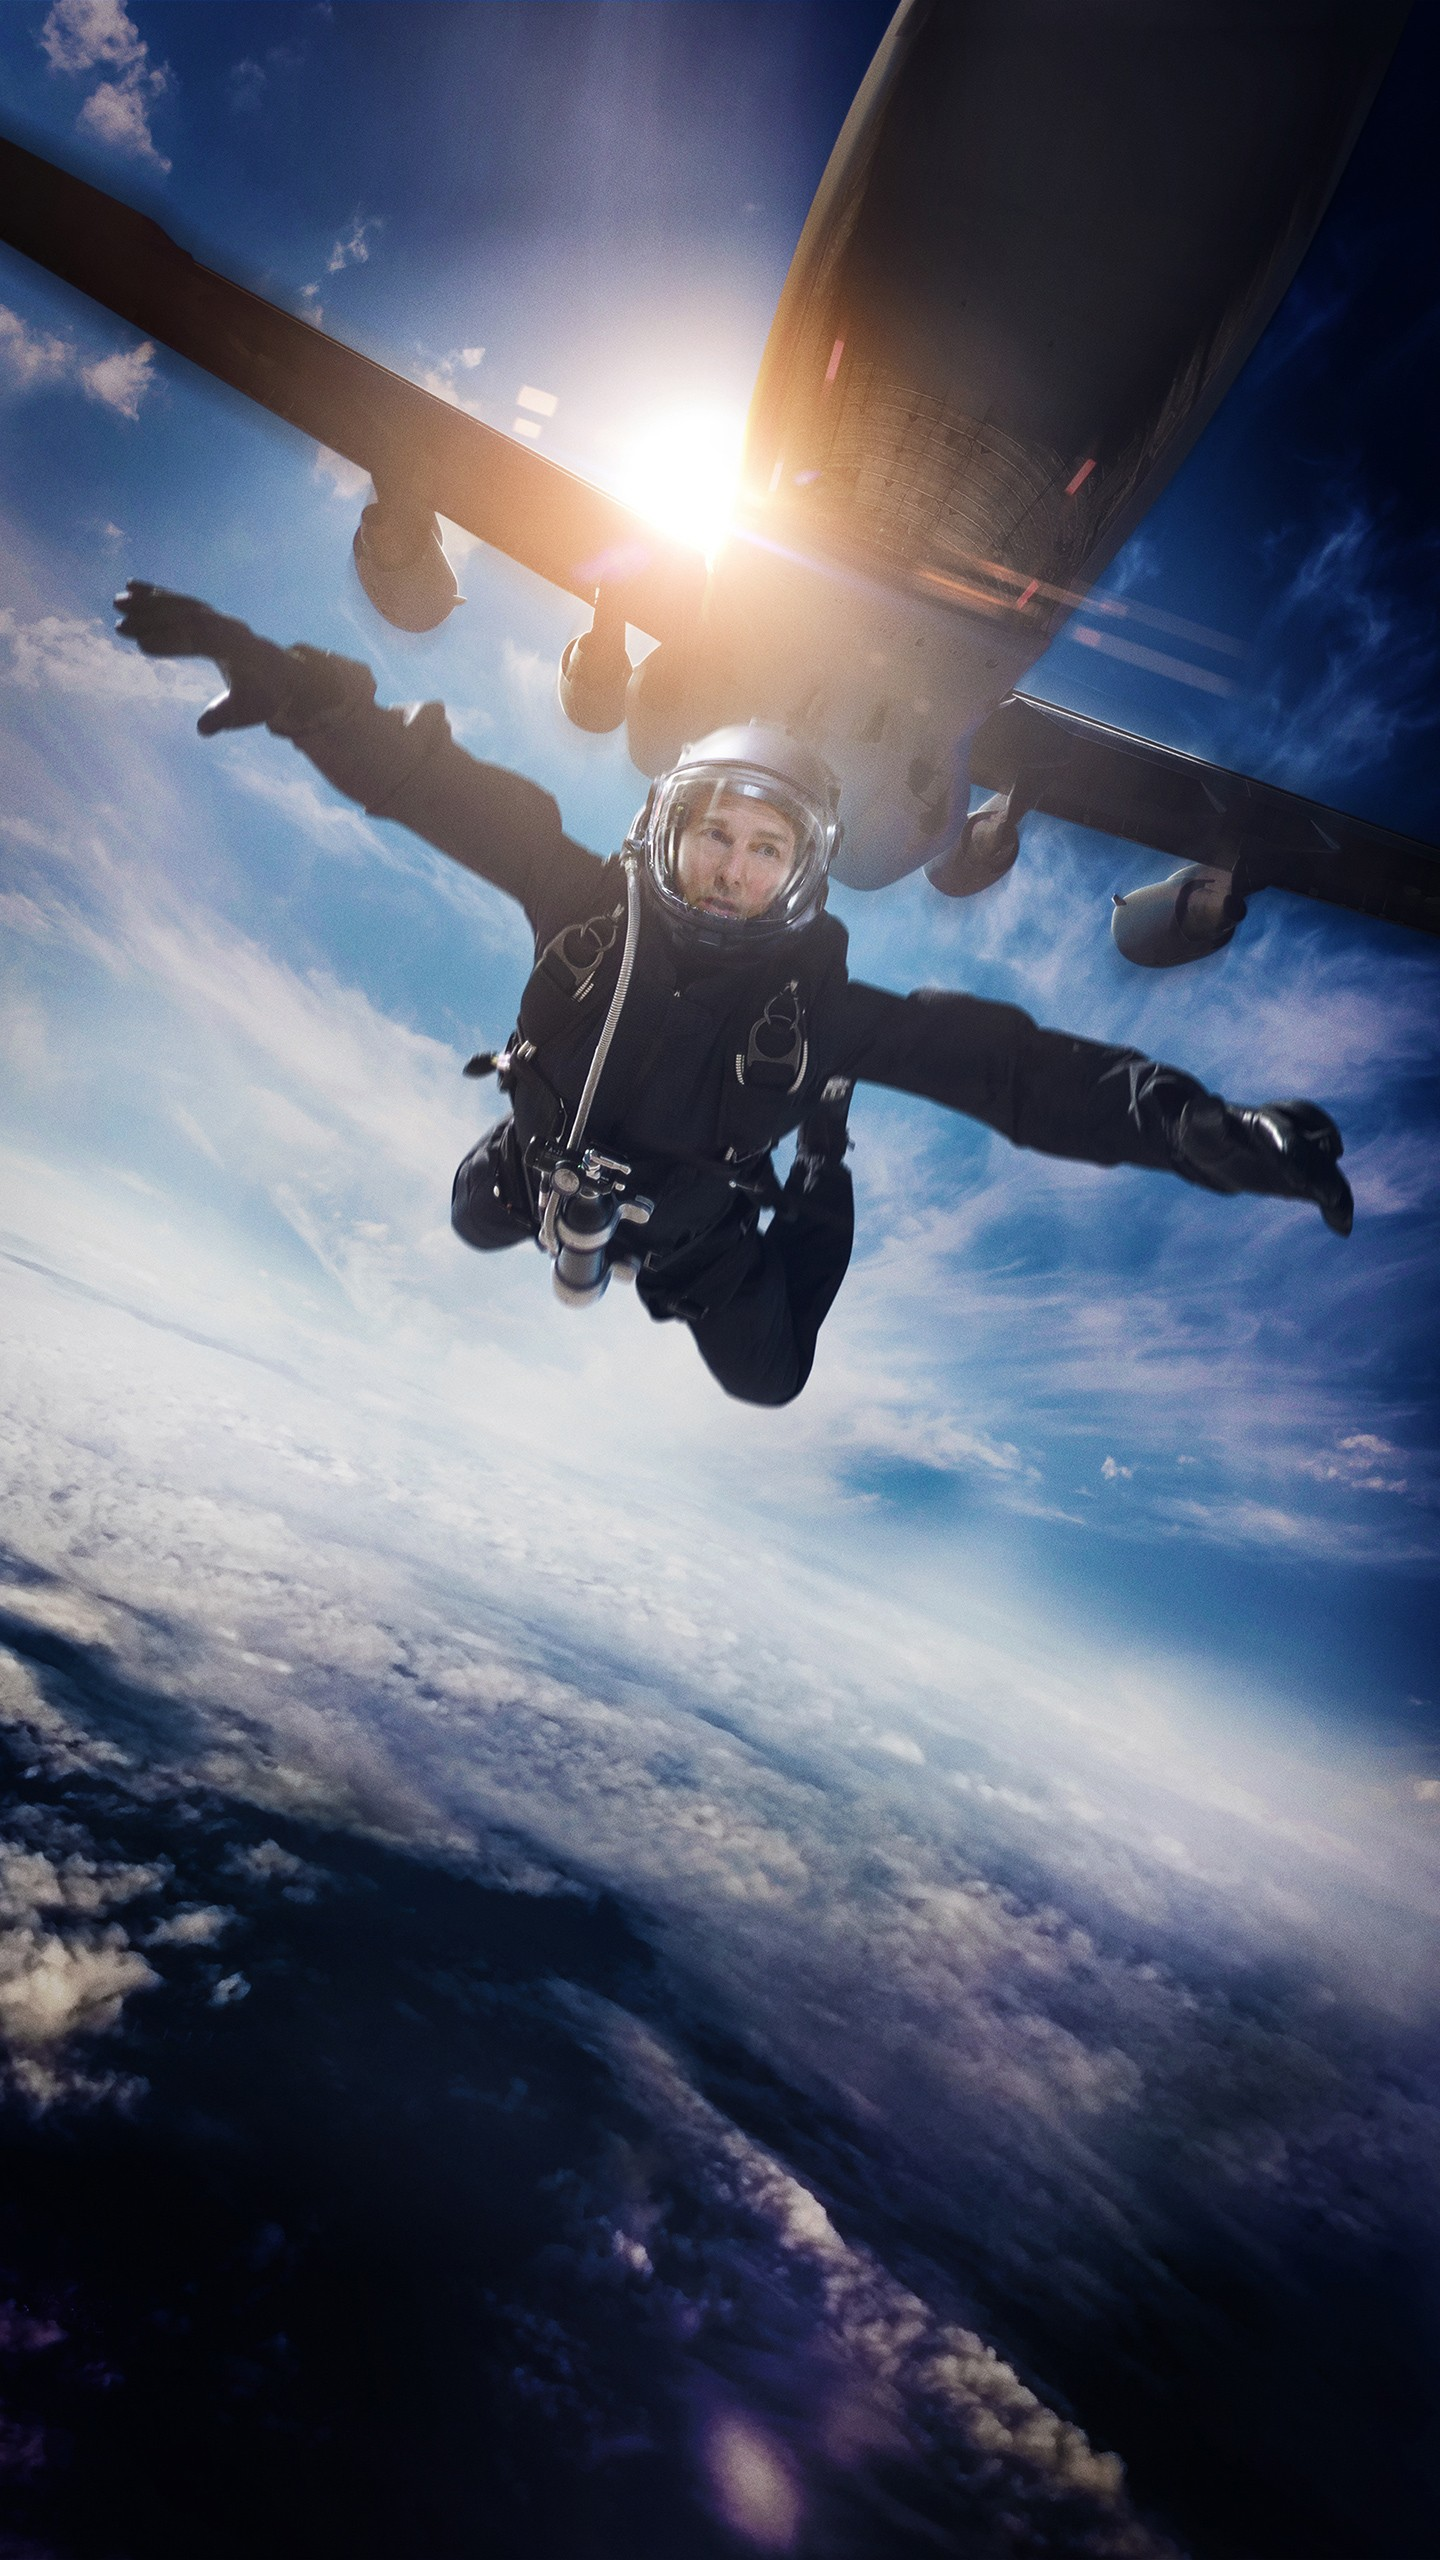 Iphone Wallpaper Grey Mission Impossible Fallout Tom Cruise Wallpapers Hd